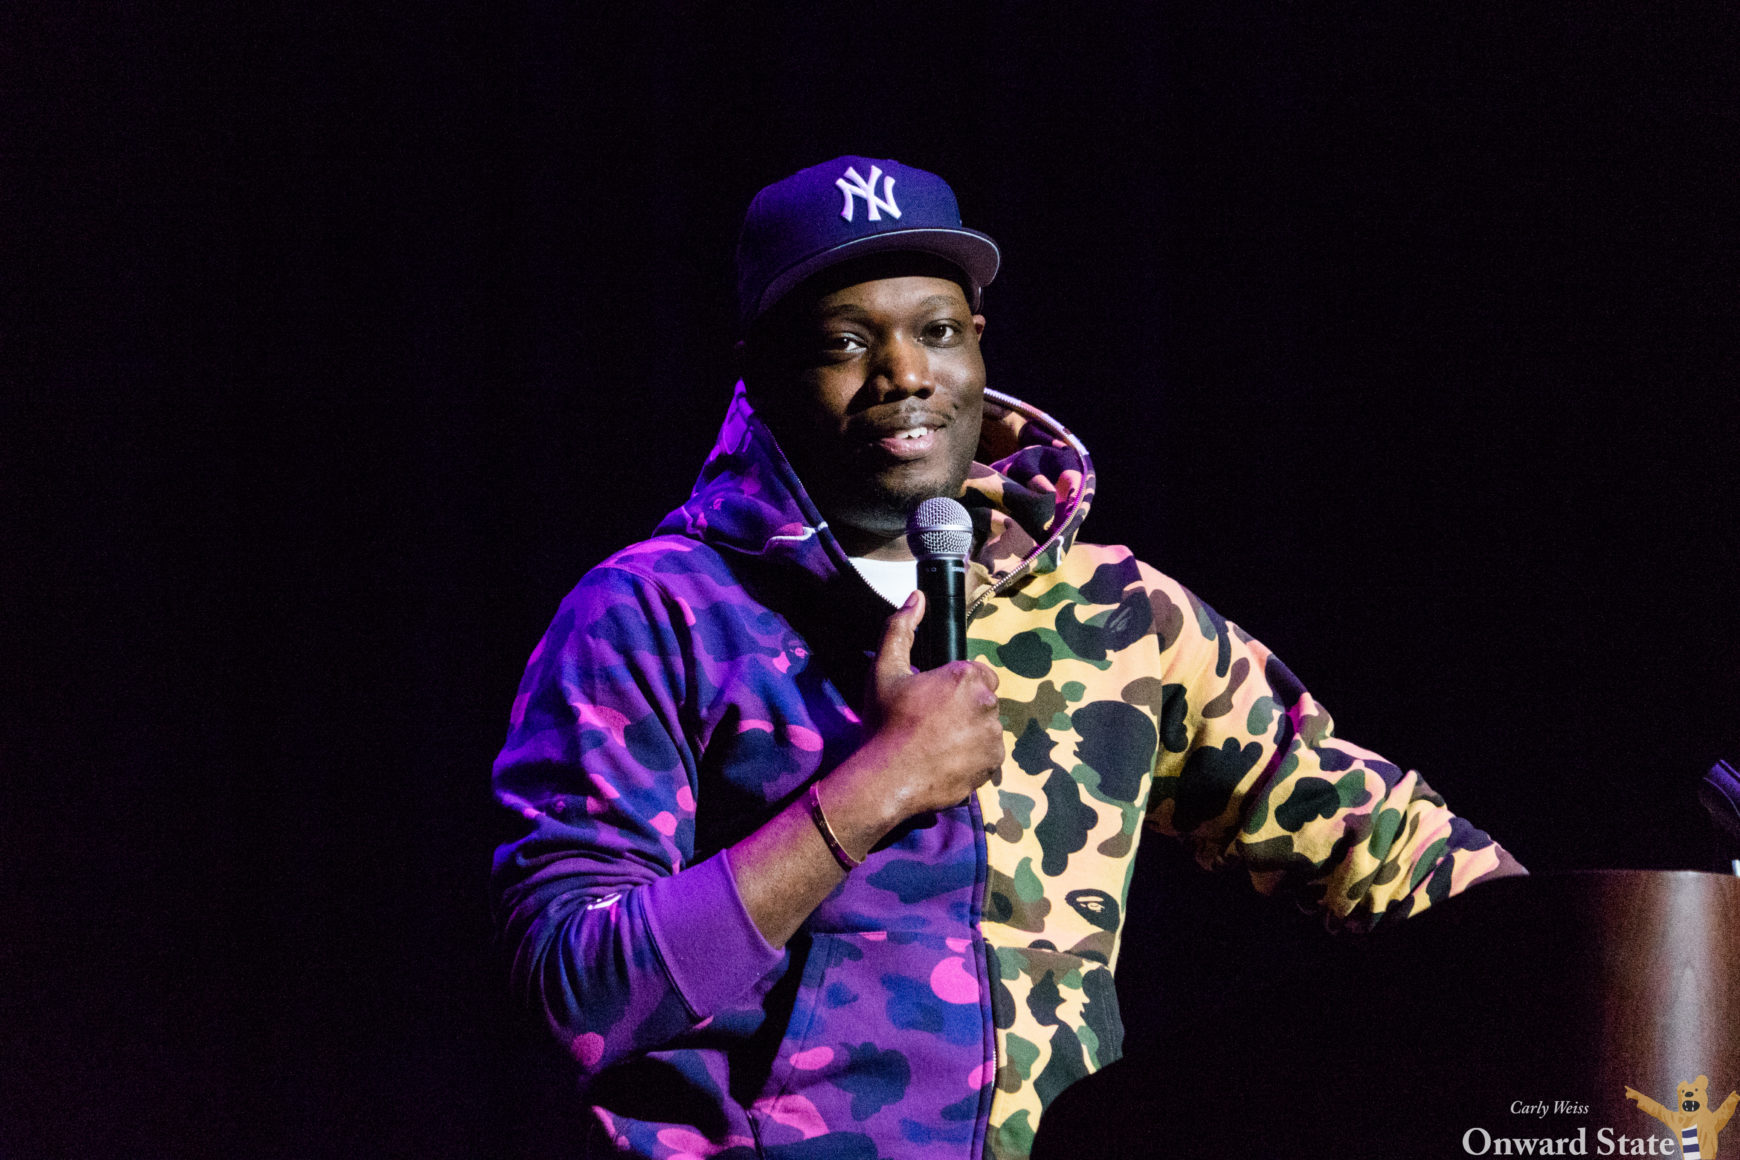 SNL's Michael Che Covers Current Events, Involves Audience In Eisenhower Auditorium Set - Onward State